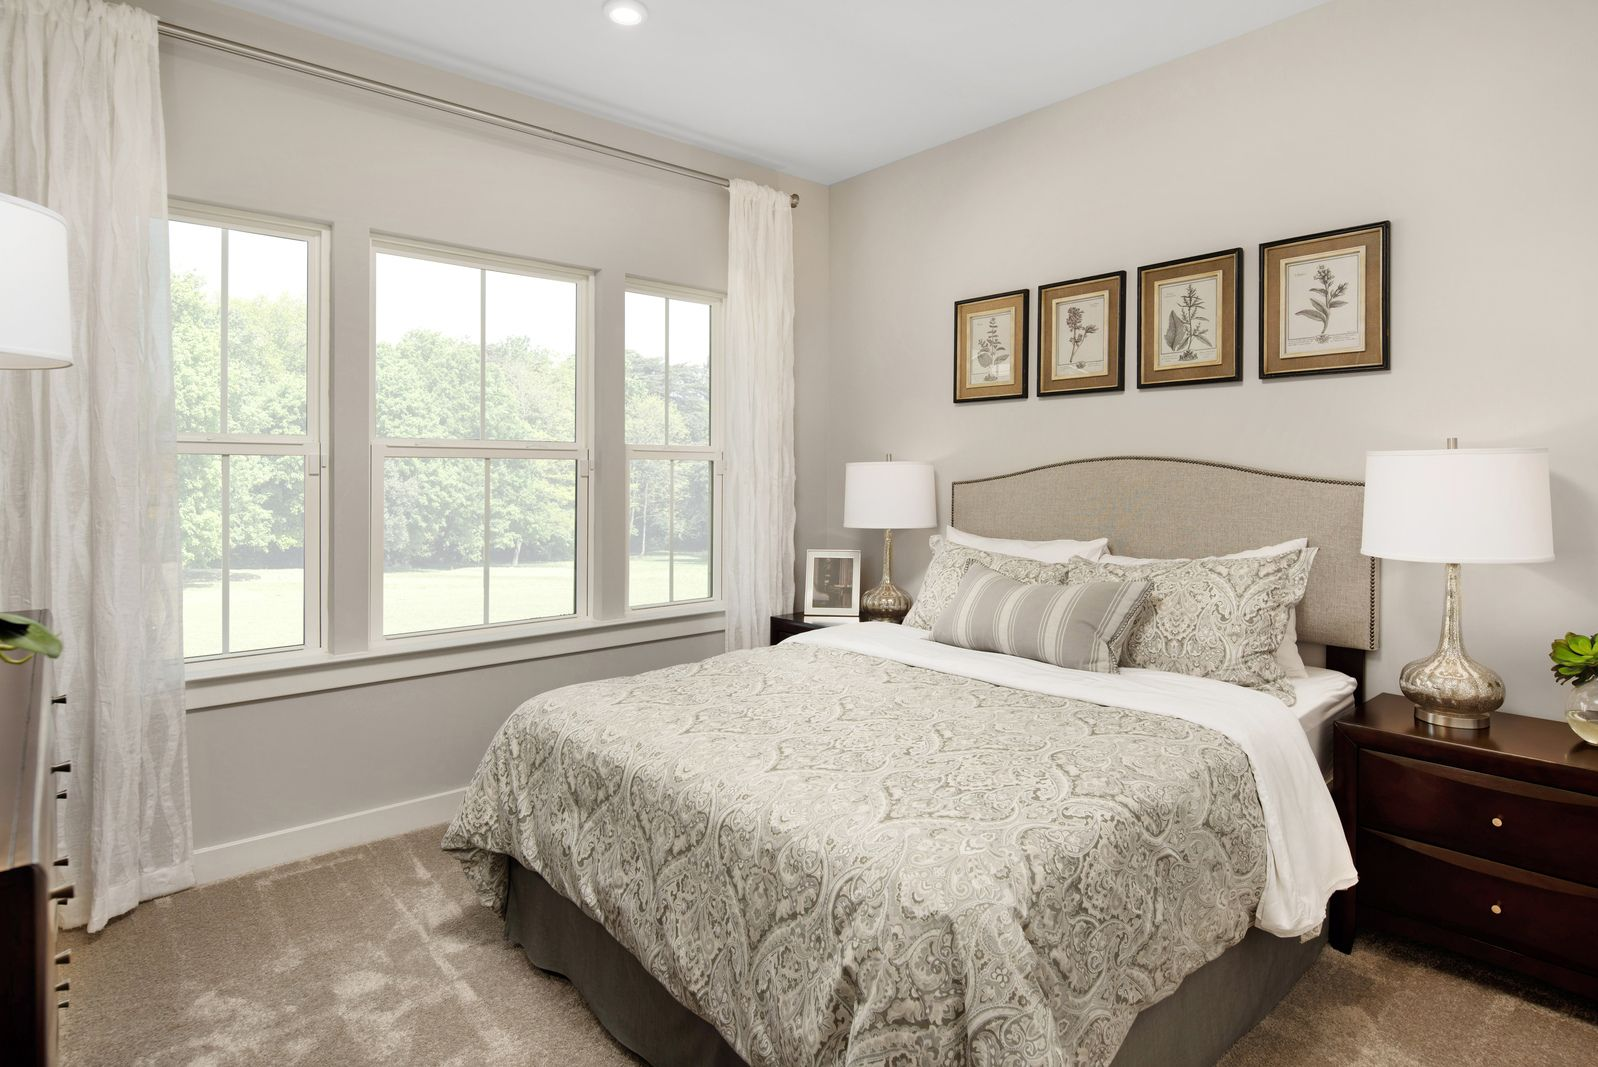 Bedroom featured in the Bramante Ranch By Ryan Homes in Washington, MD